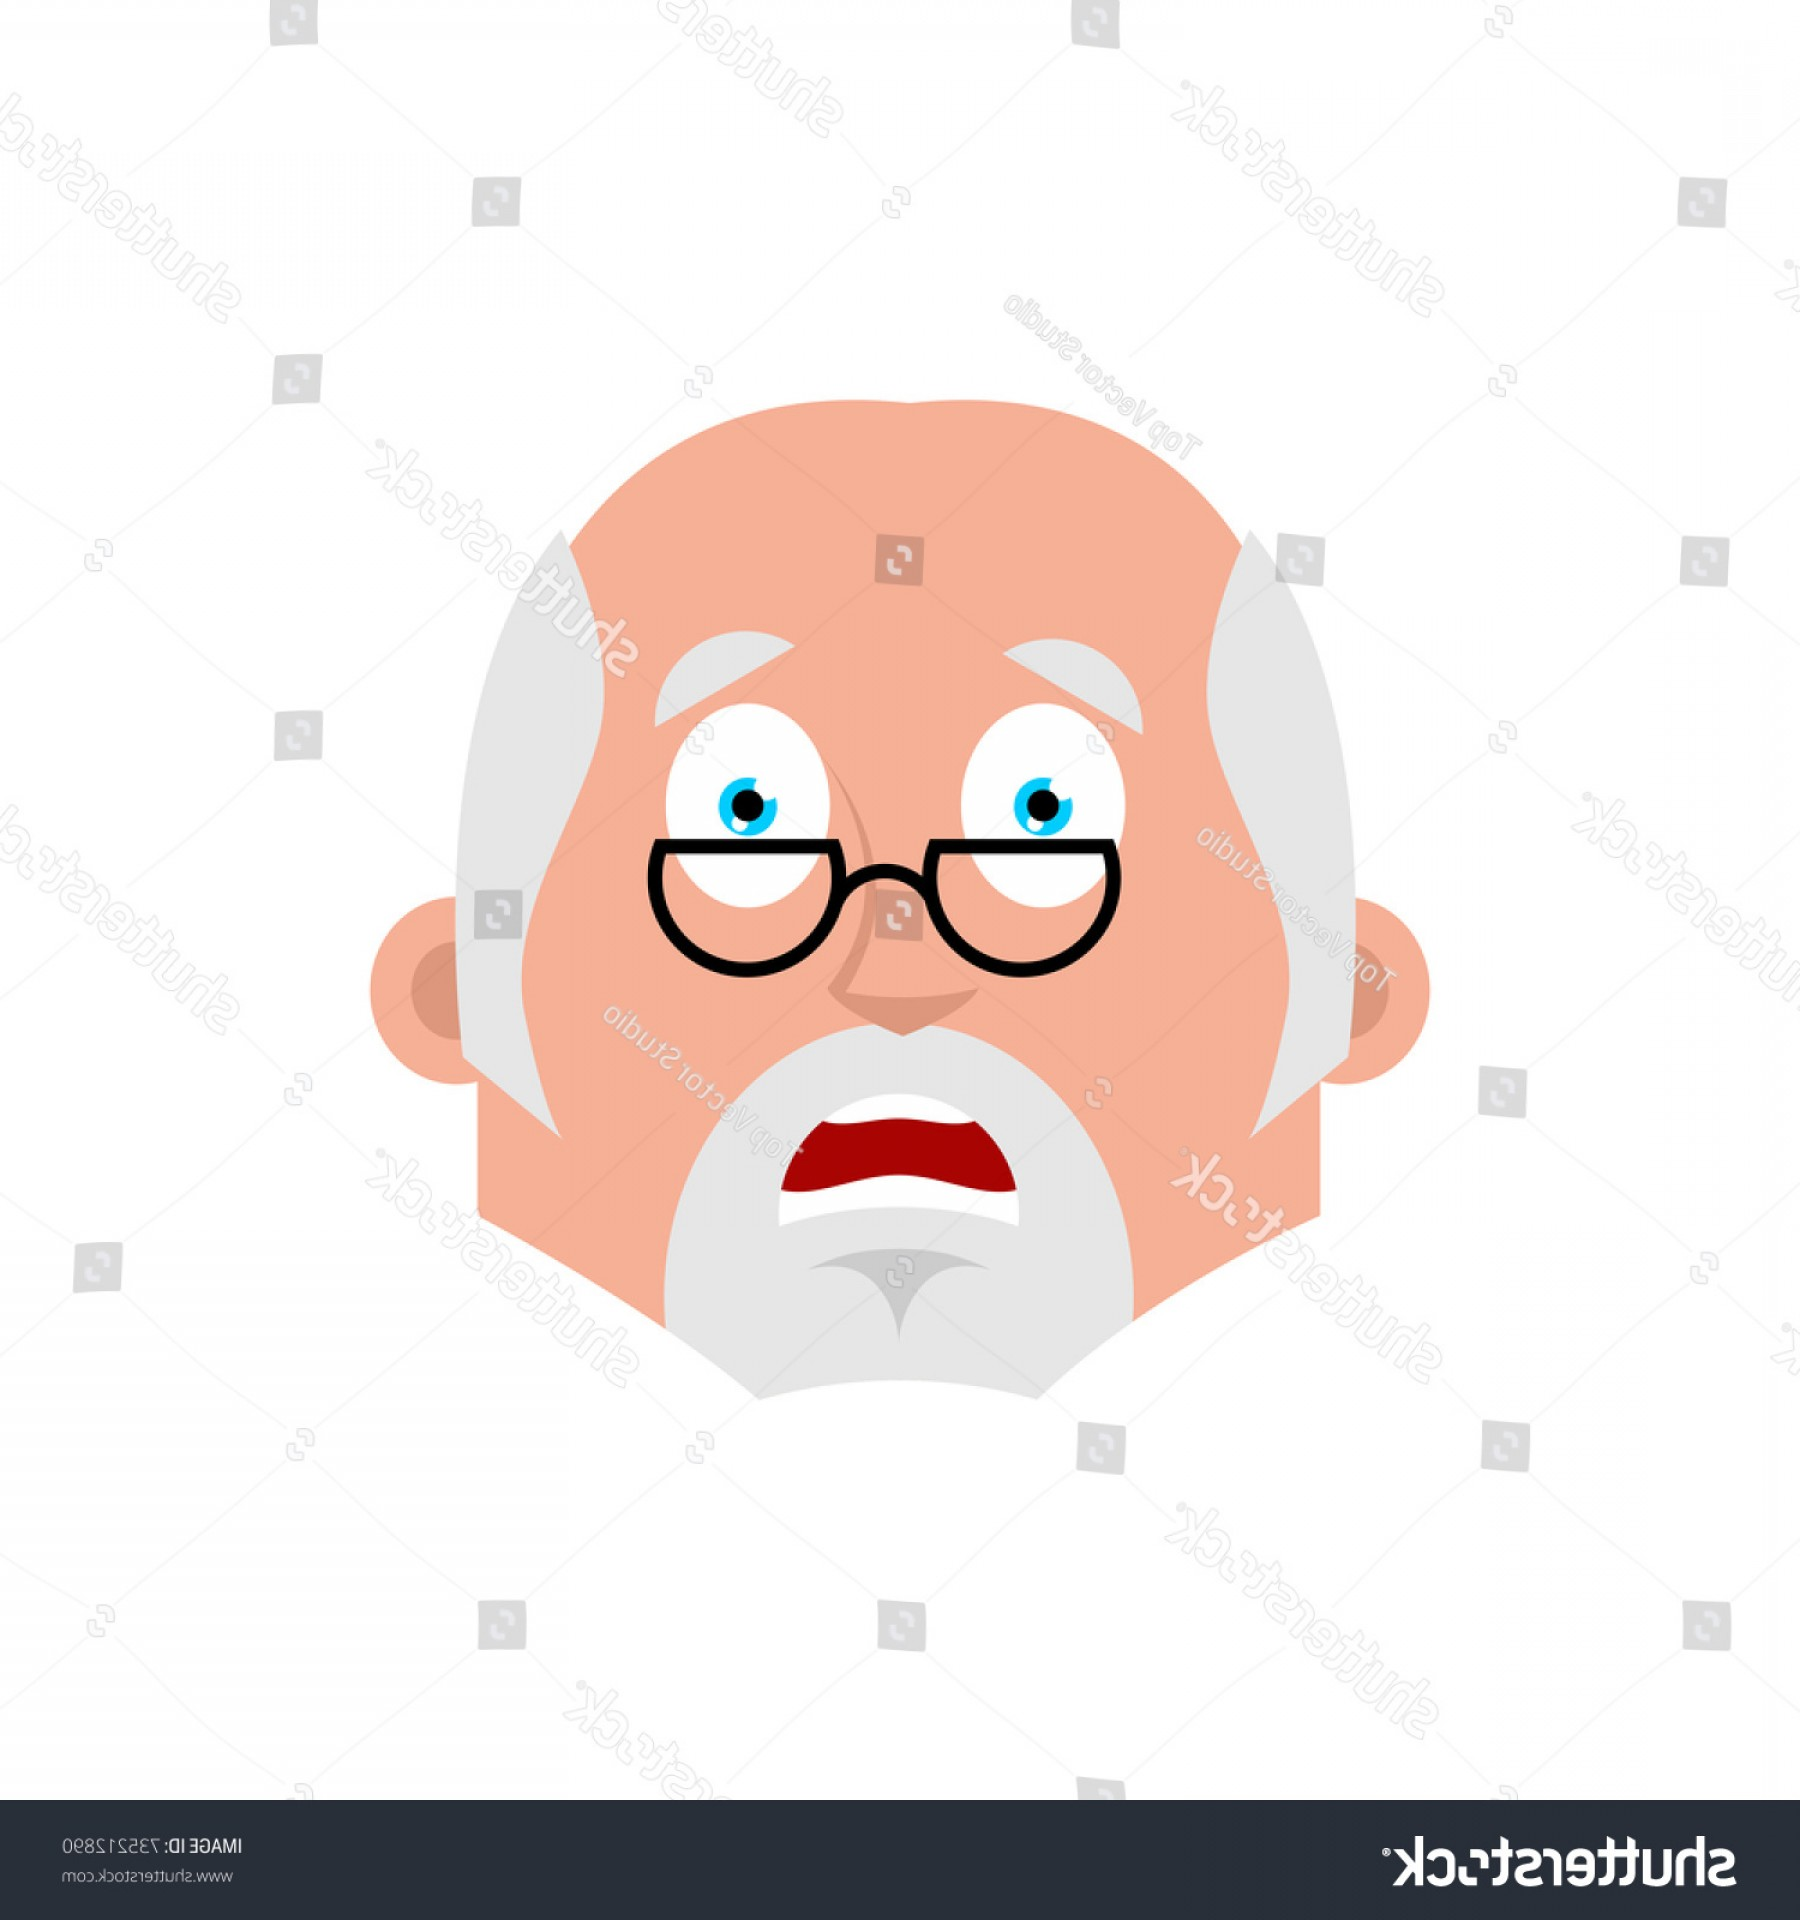 Fear The Beard Vector: Doctor Scared Emotion Avatar Physician Fear